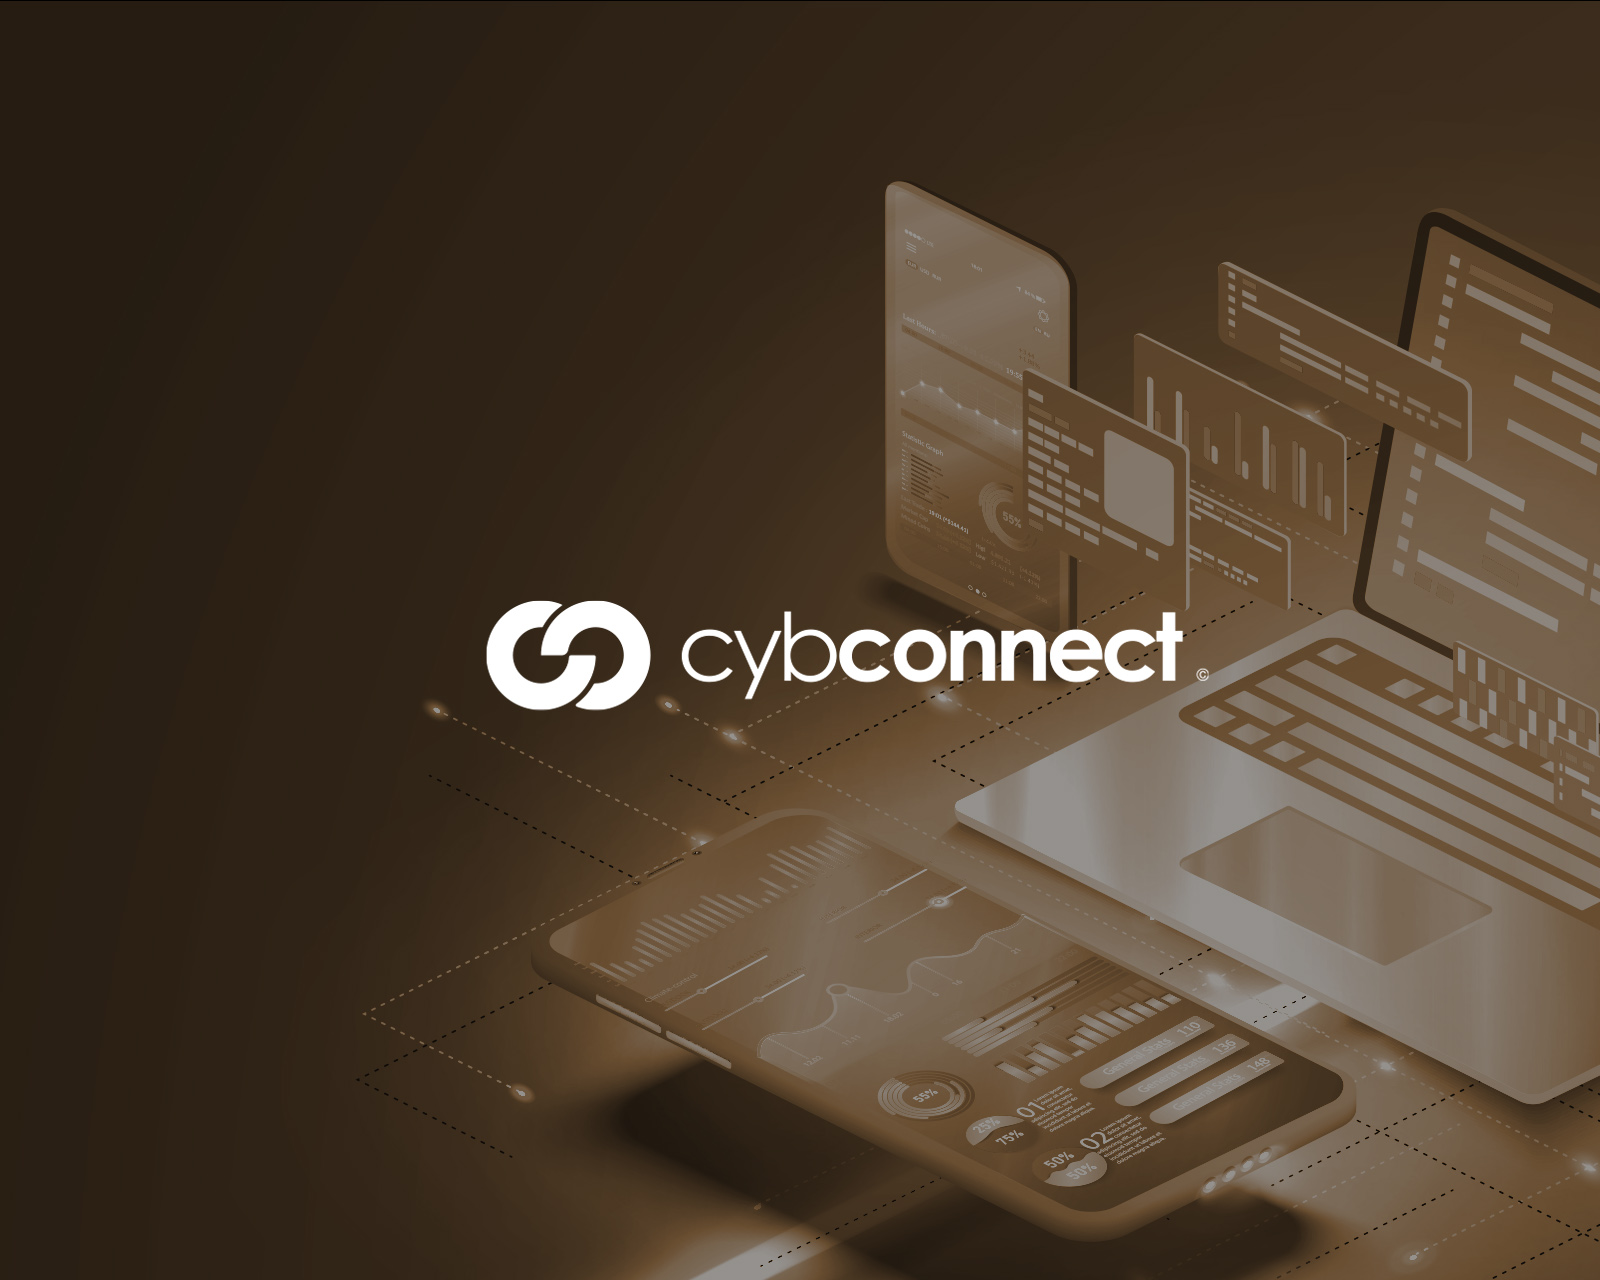 Cyb Connect Website Design By Subluma